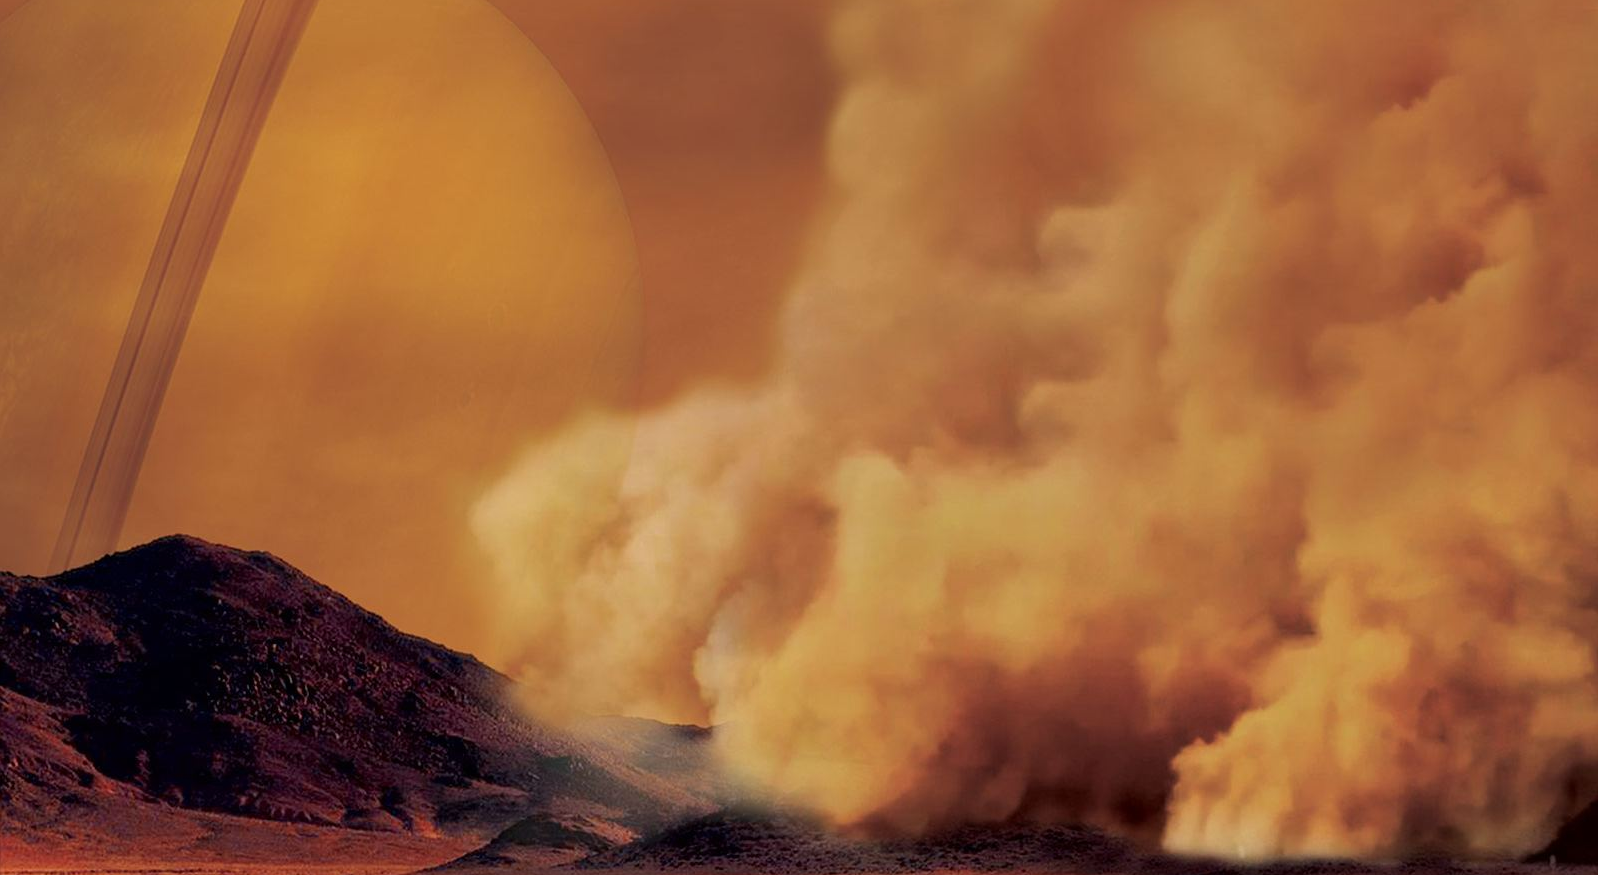 First discovered dust storms on Titan show its similarity with the Earth